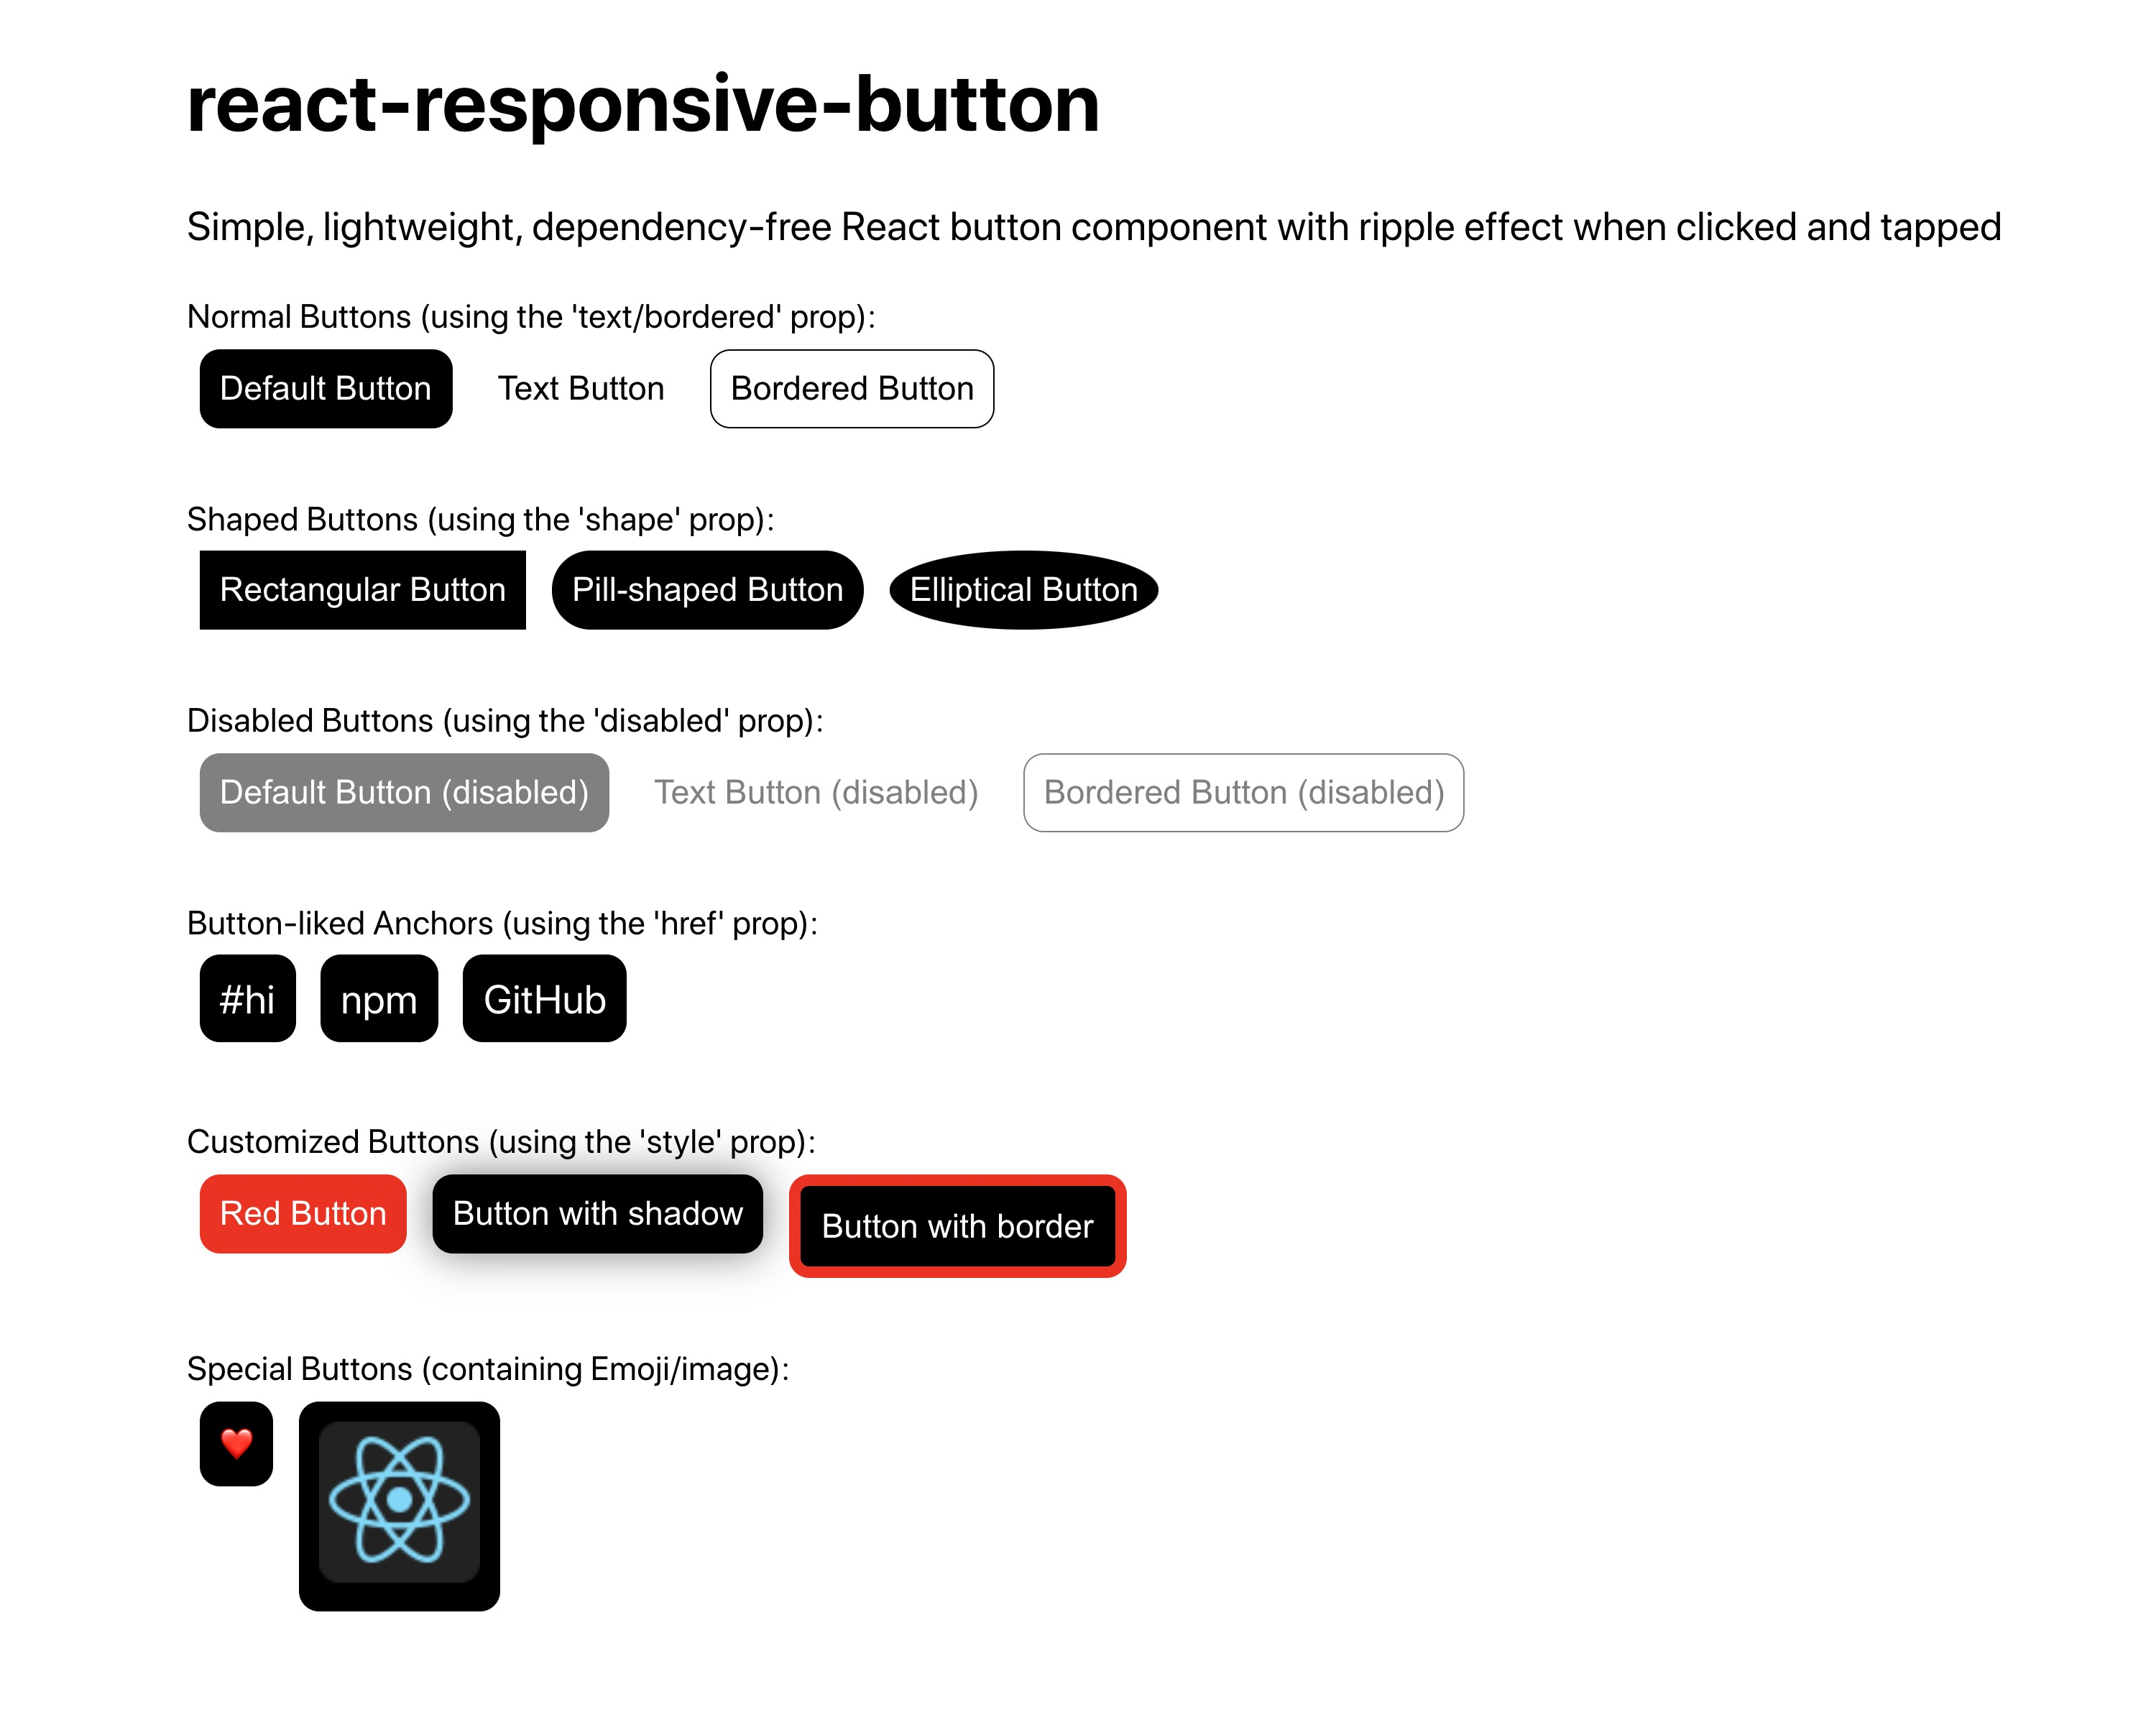 react-responsive-button default, styled and customized buttons